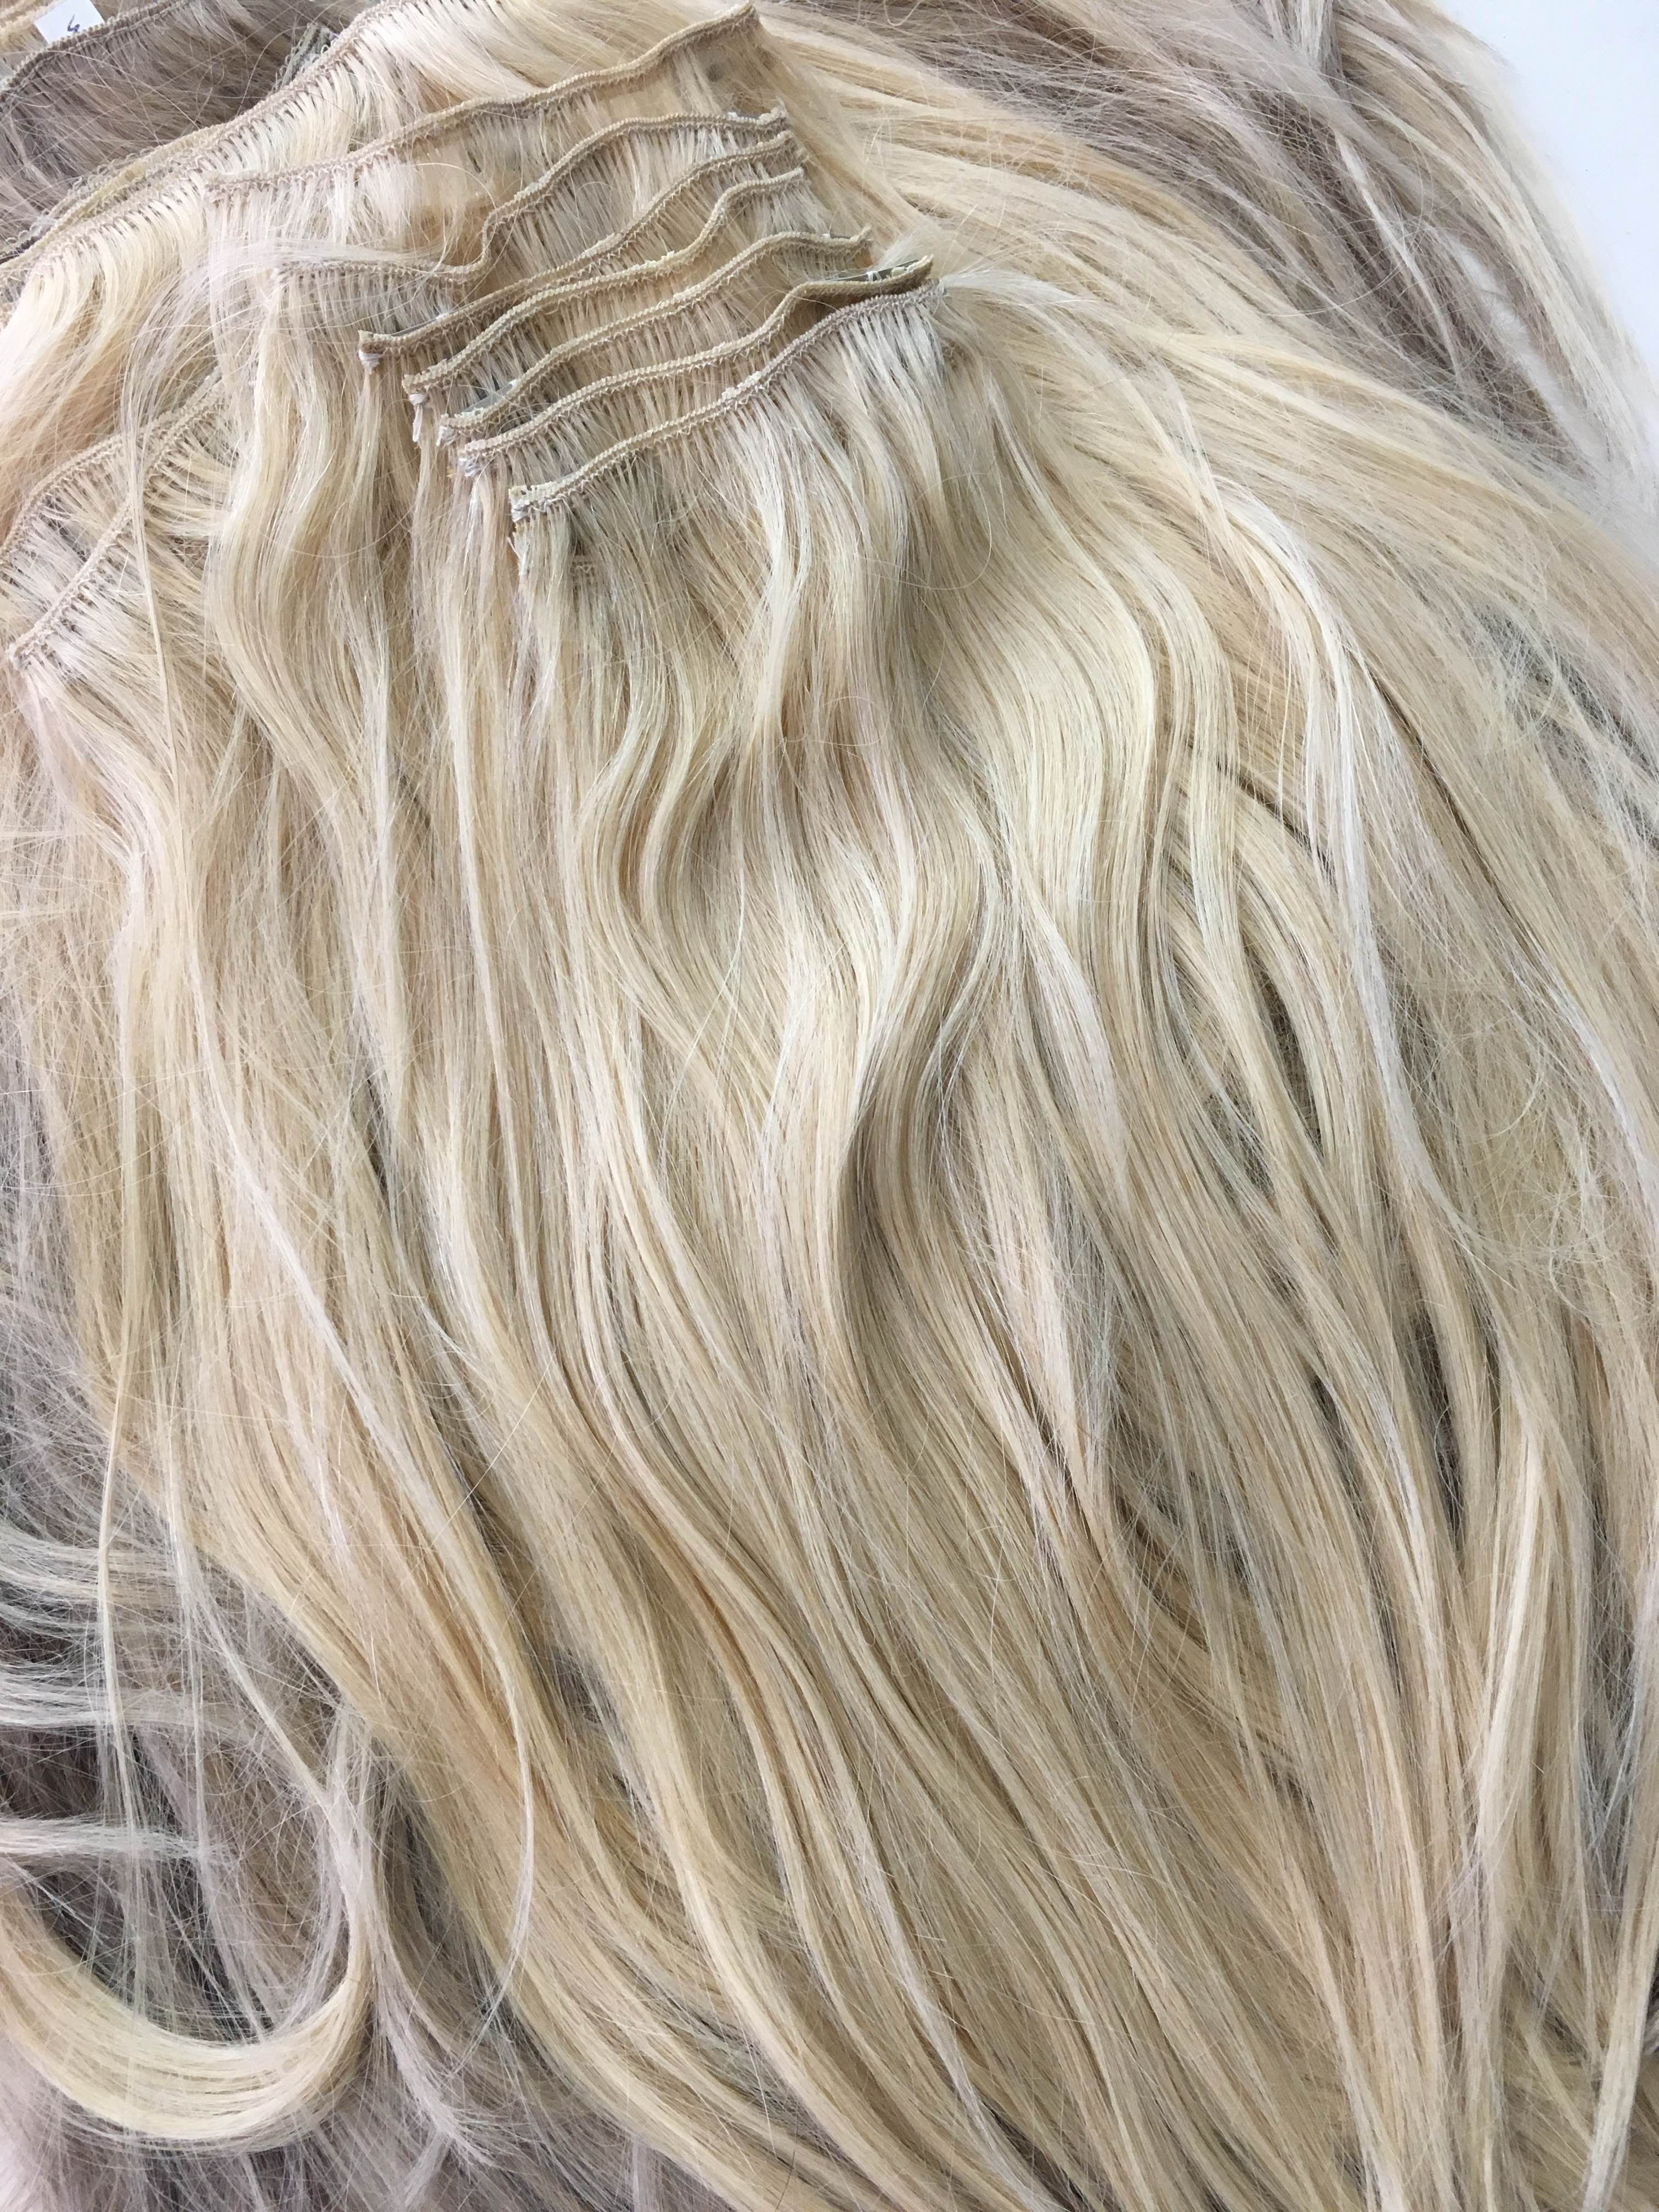 1oo hair extension Wefts for Mim\'s 100 layers hair extensions ...